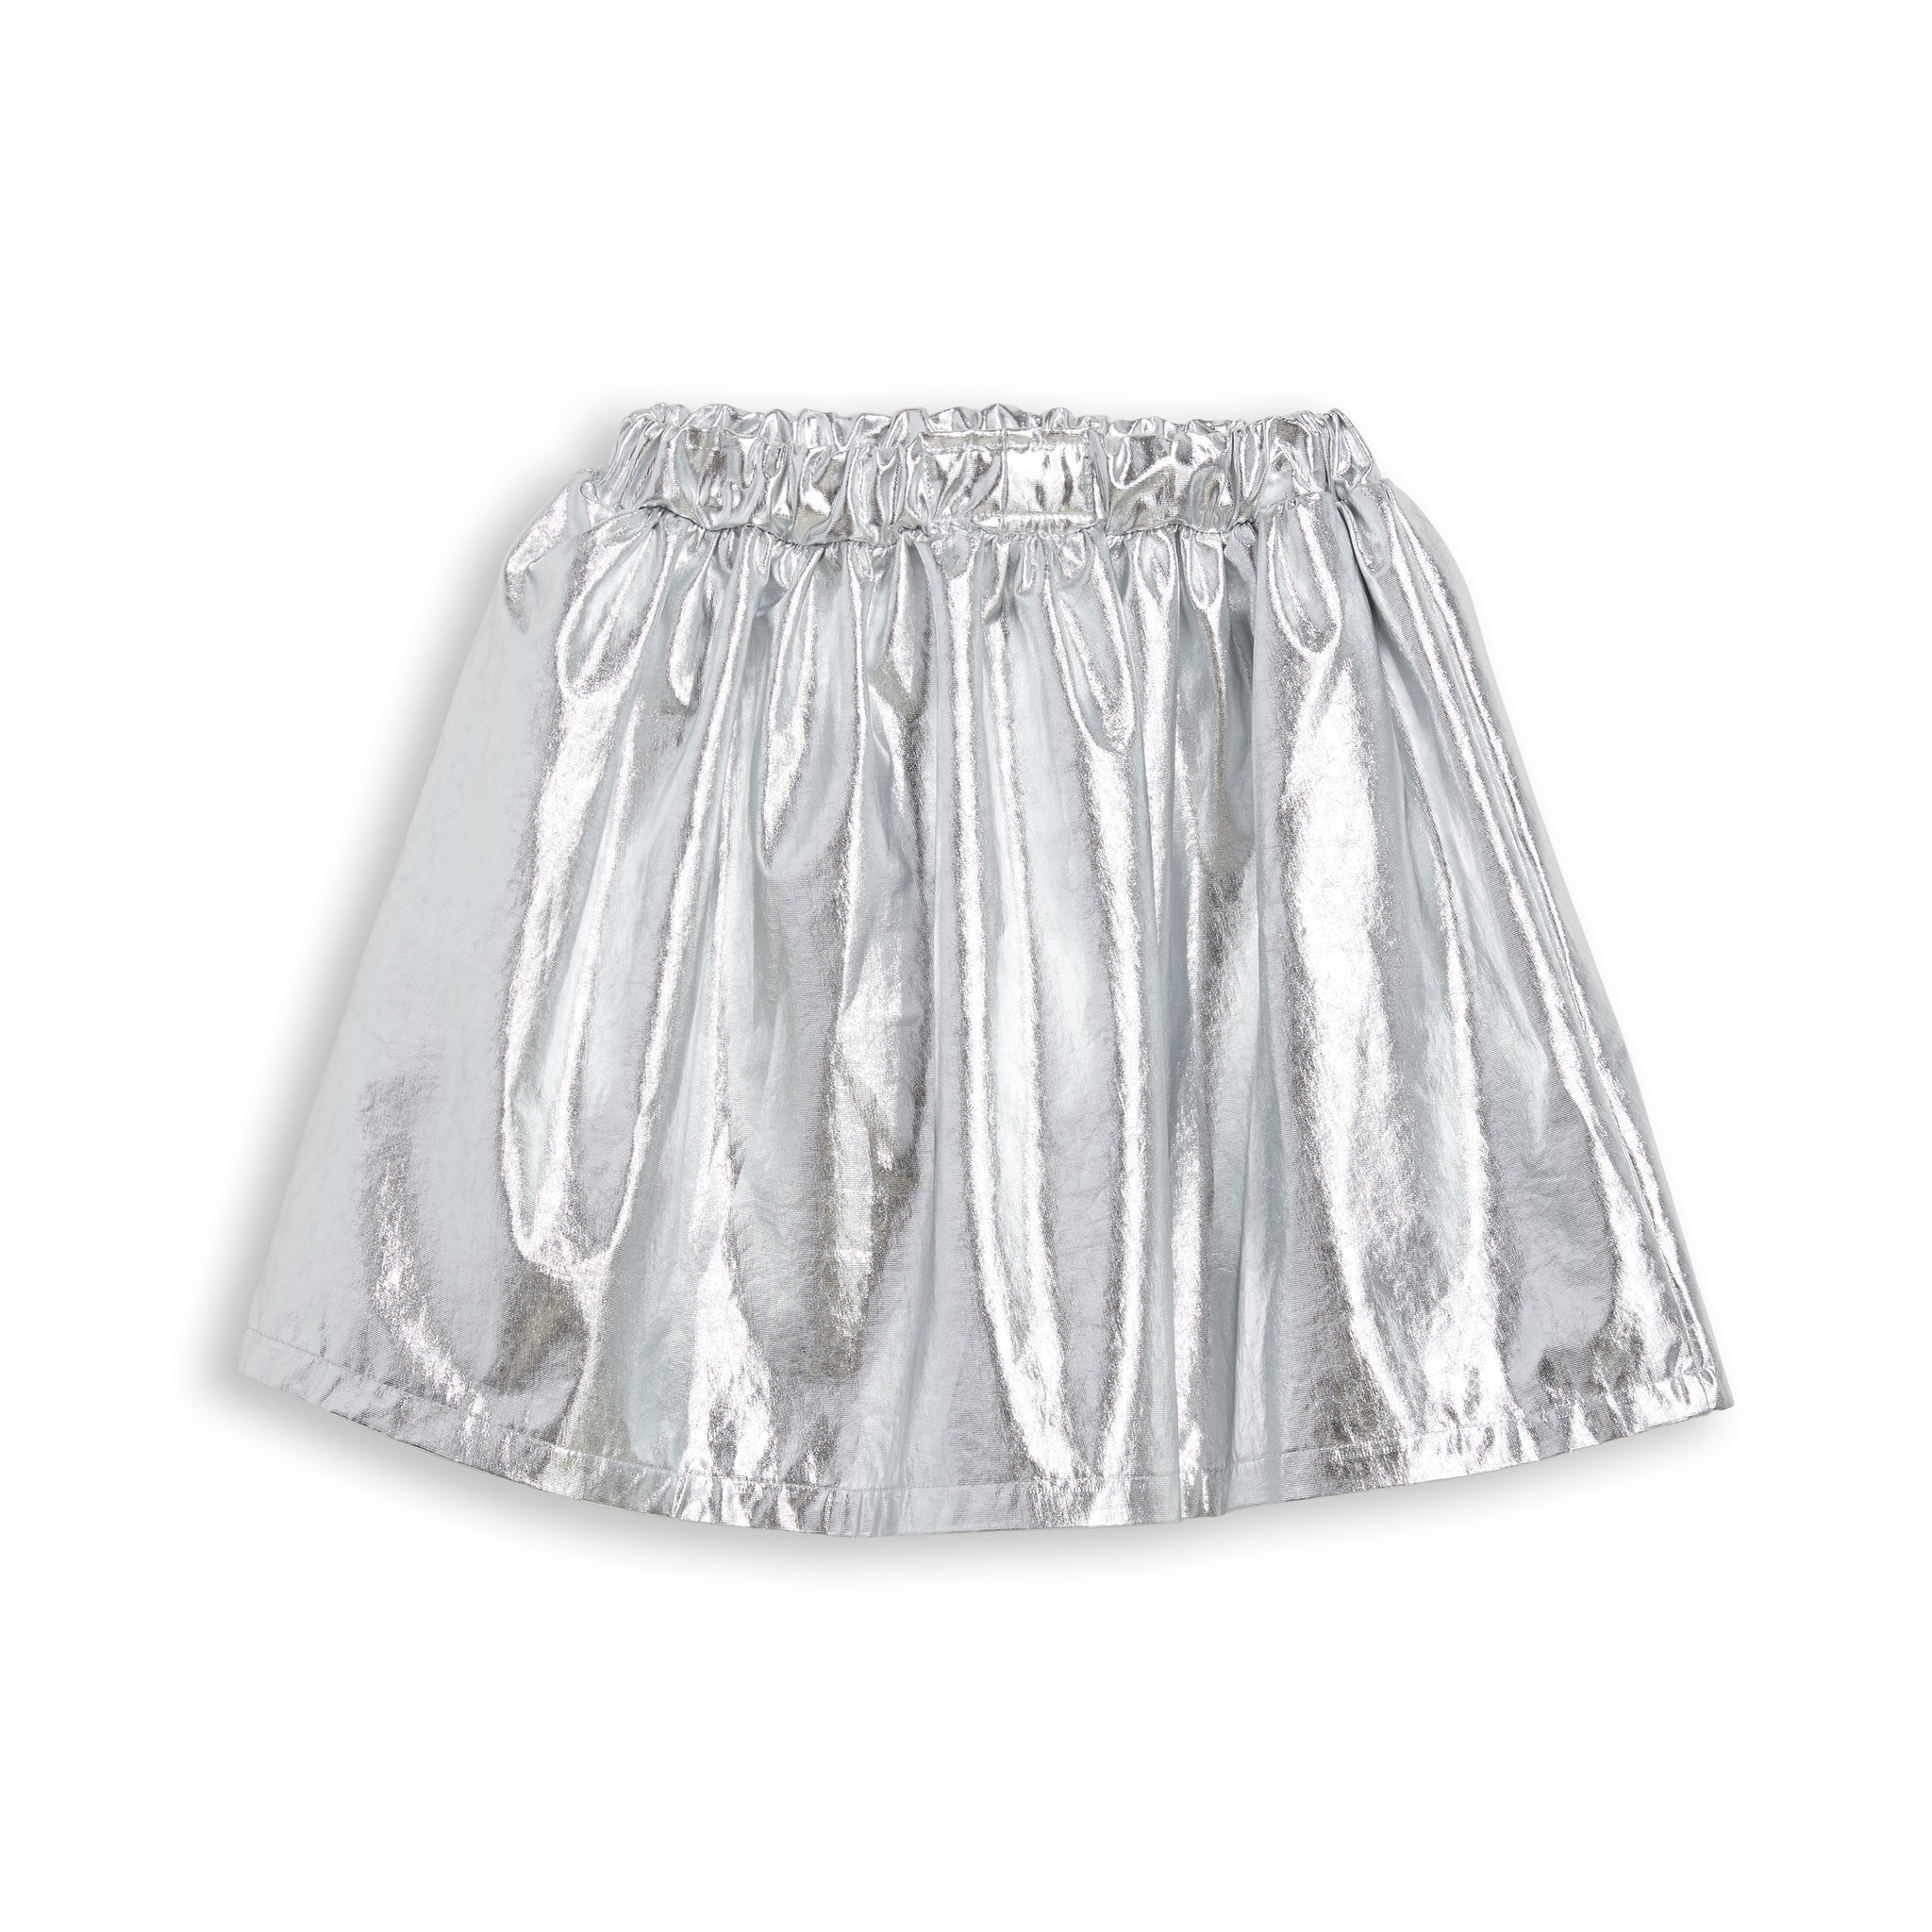 ASHBY Gunmetal - Skirt 2